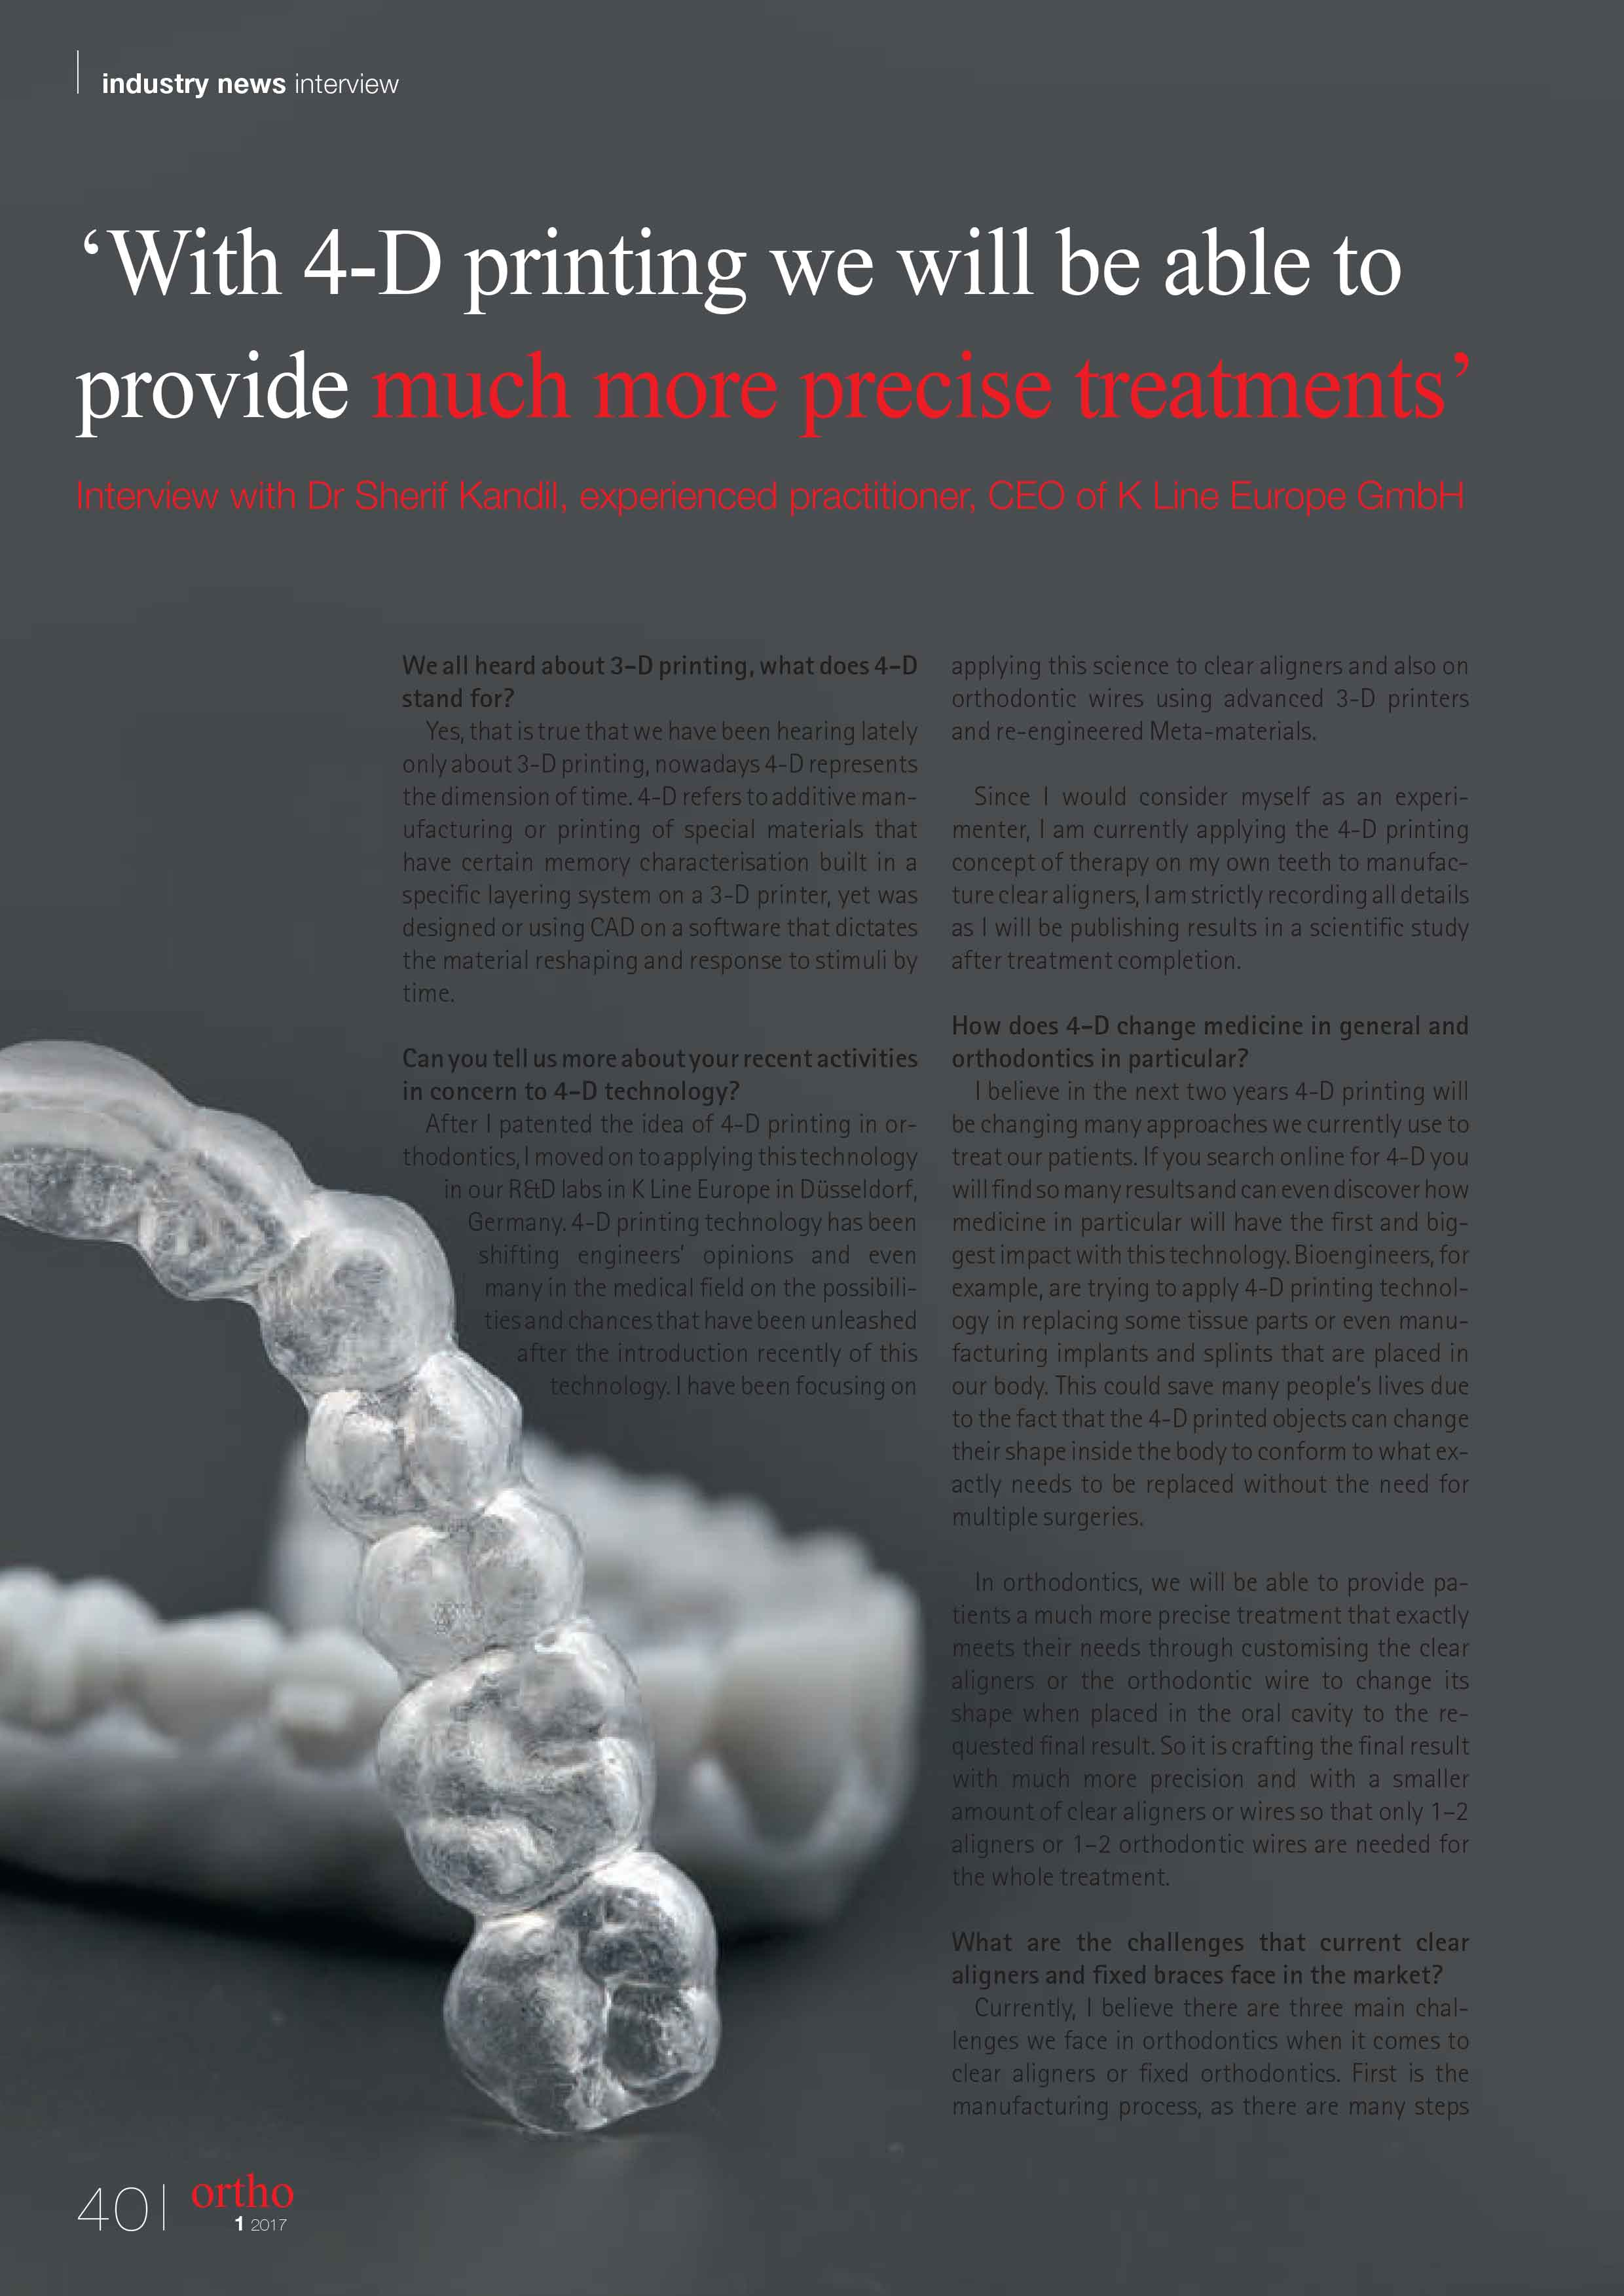 With 4d Printing We will be able to provide much more precise treatments